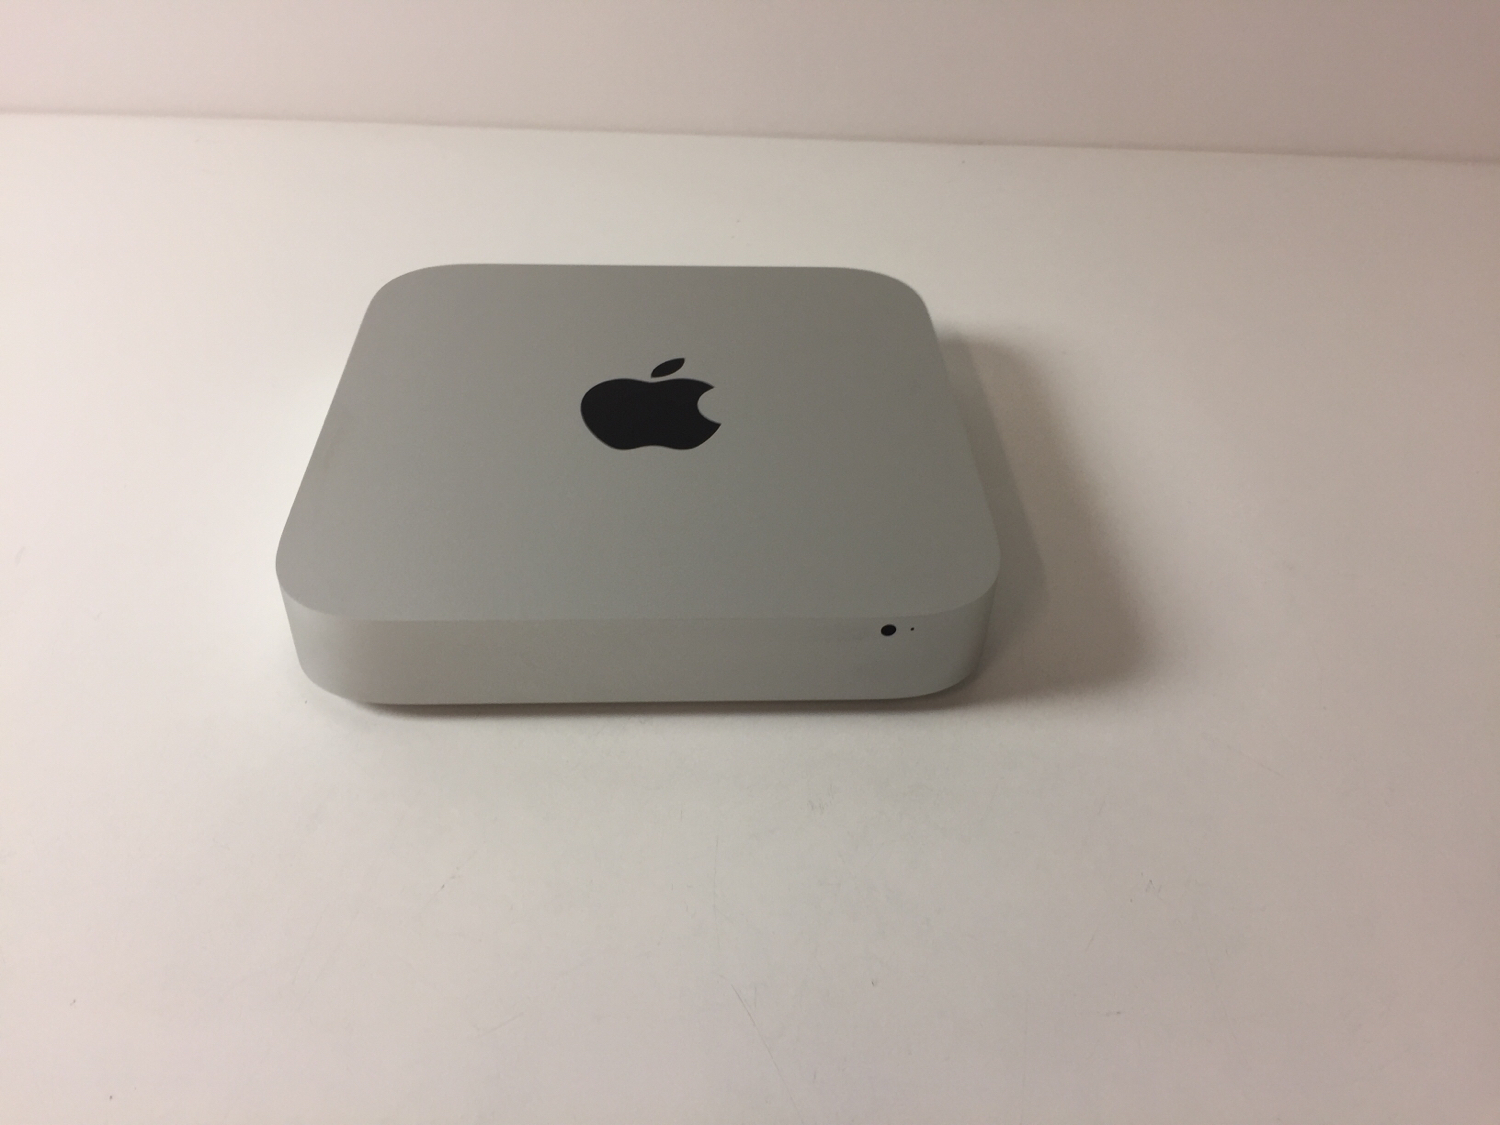 Mac Mini Mid 2011 (Intel Core i5 2.3 GHz 4 GB RAM 500 GB HDD), Intel Core i5 2.3 GHz, 2 GB , 500 GB HDD  , bild 1